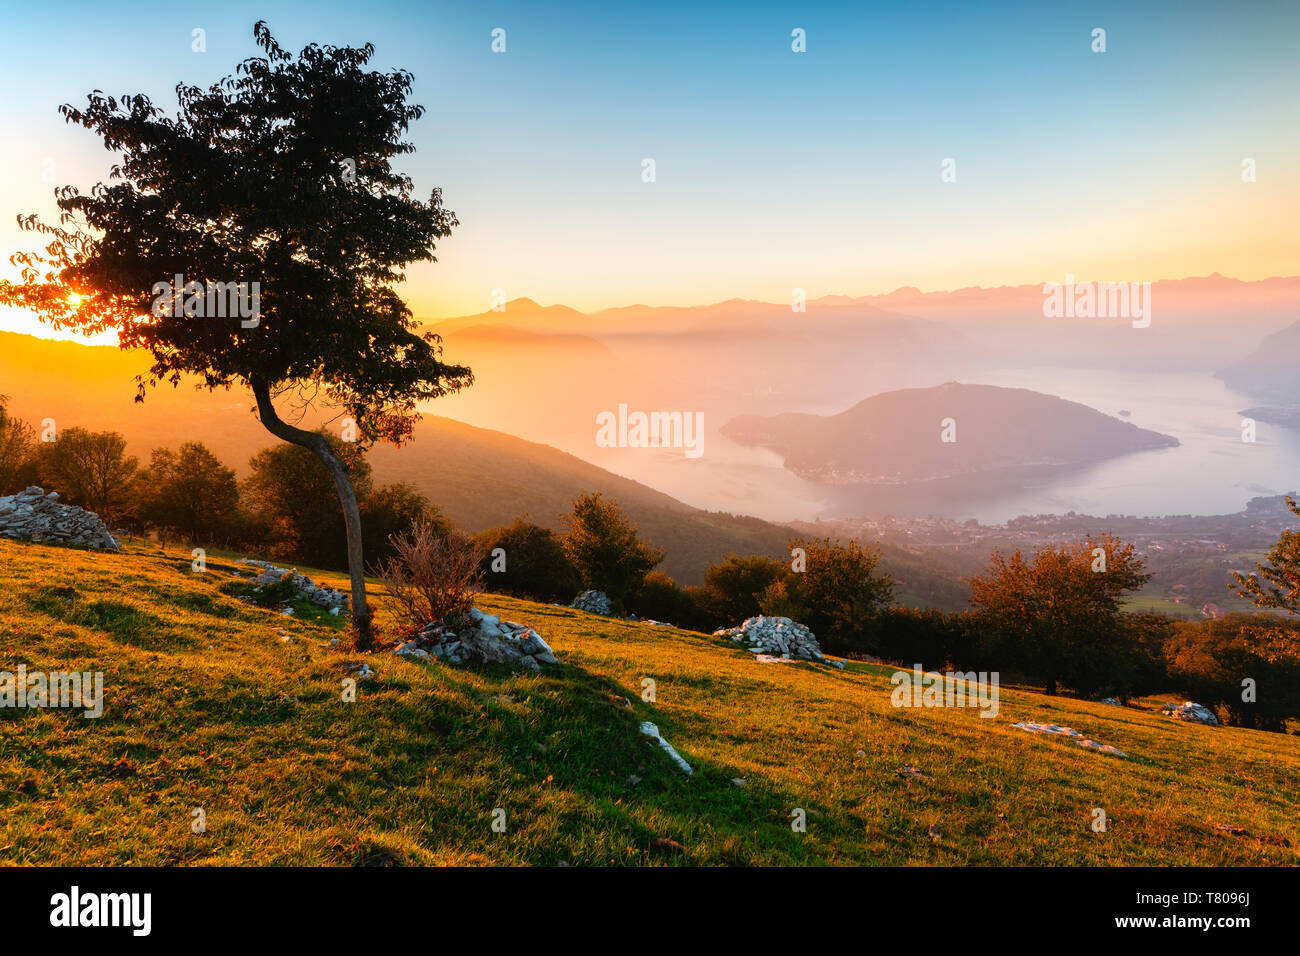 Iseo Lake and Monte Isola at sunset with fog in autumn season, Brescia Province, Lombardy, Italy, Europe - Stock Image